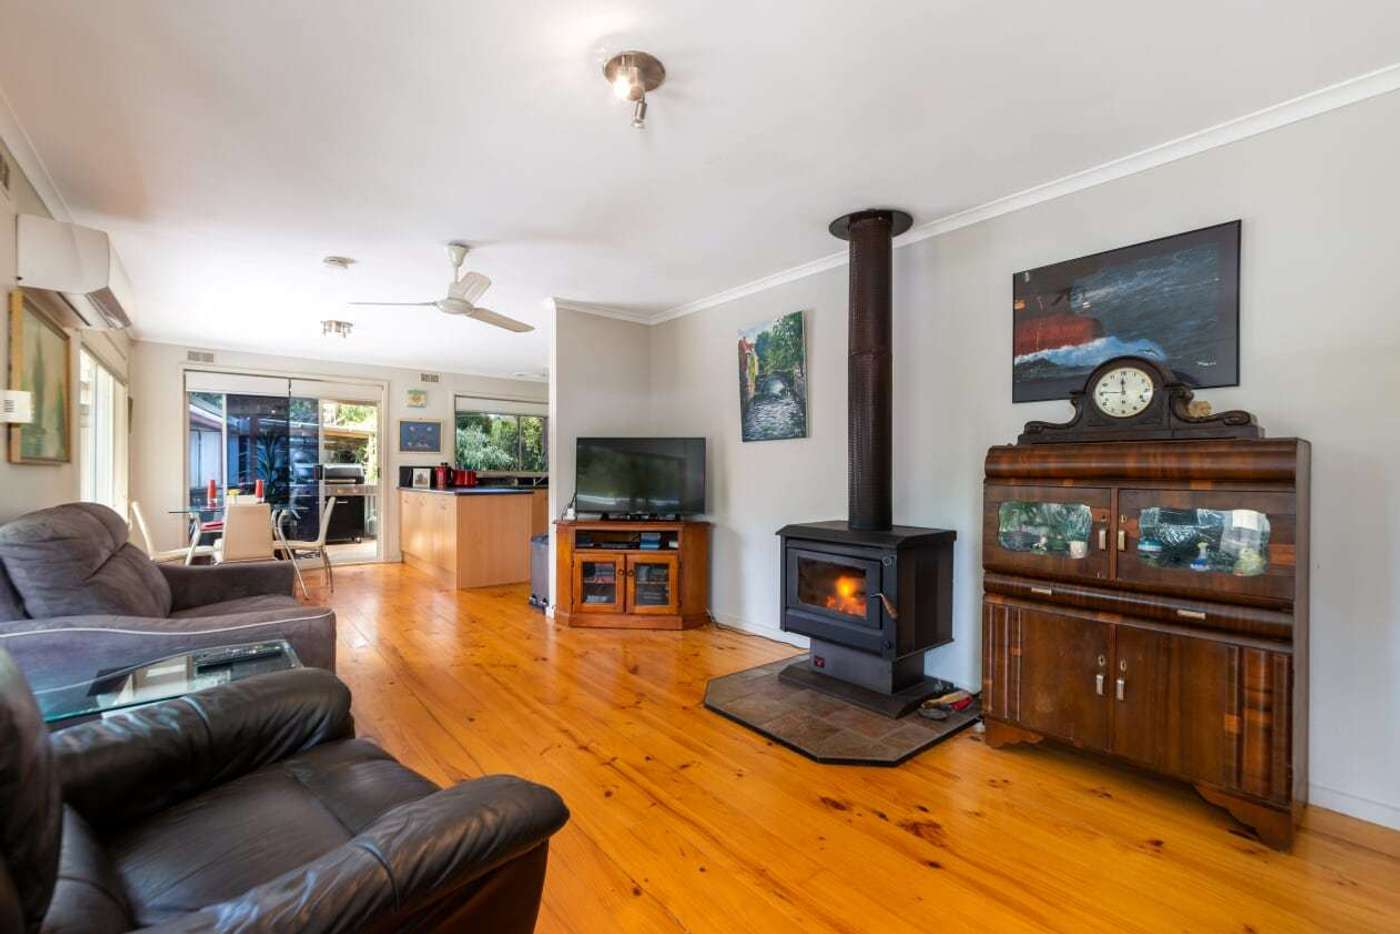 Main view of Homely house listing, 2 Corandirk St, Warneet VIC 3980